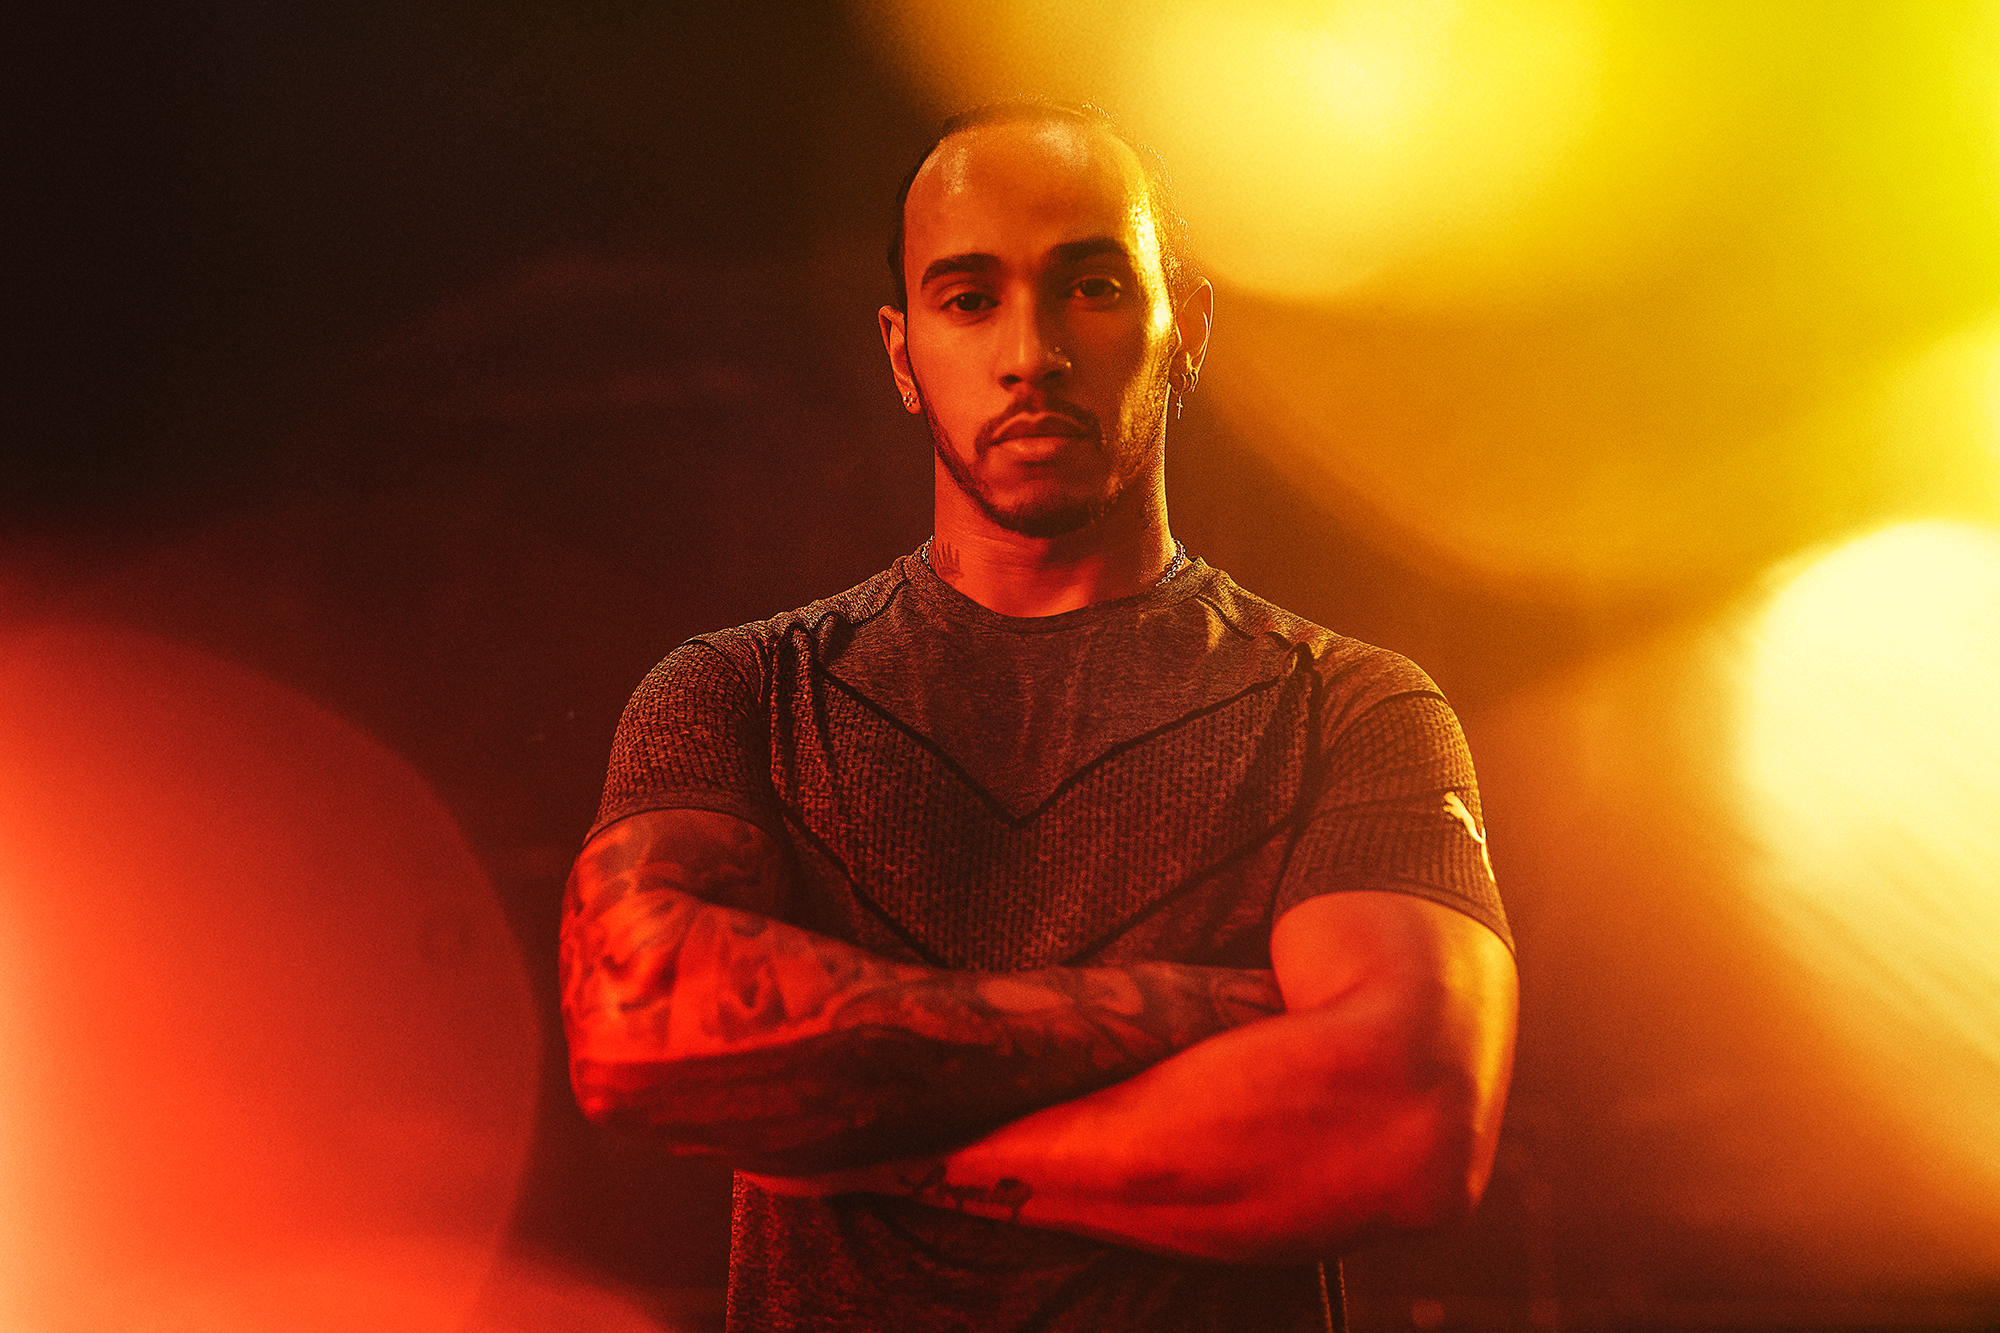 Lewis Hamilton, Formula 1 Champion. Puma Running and Training Hybrid.